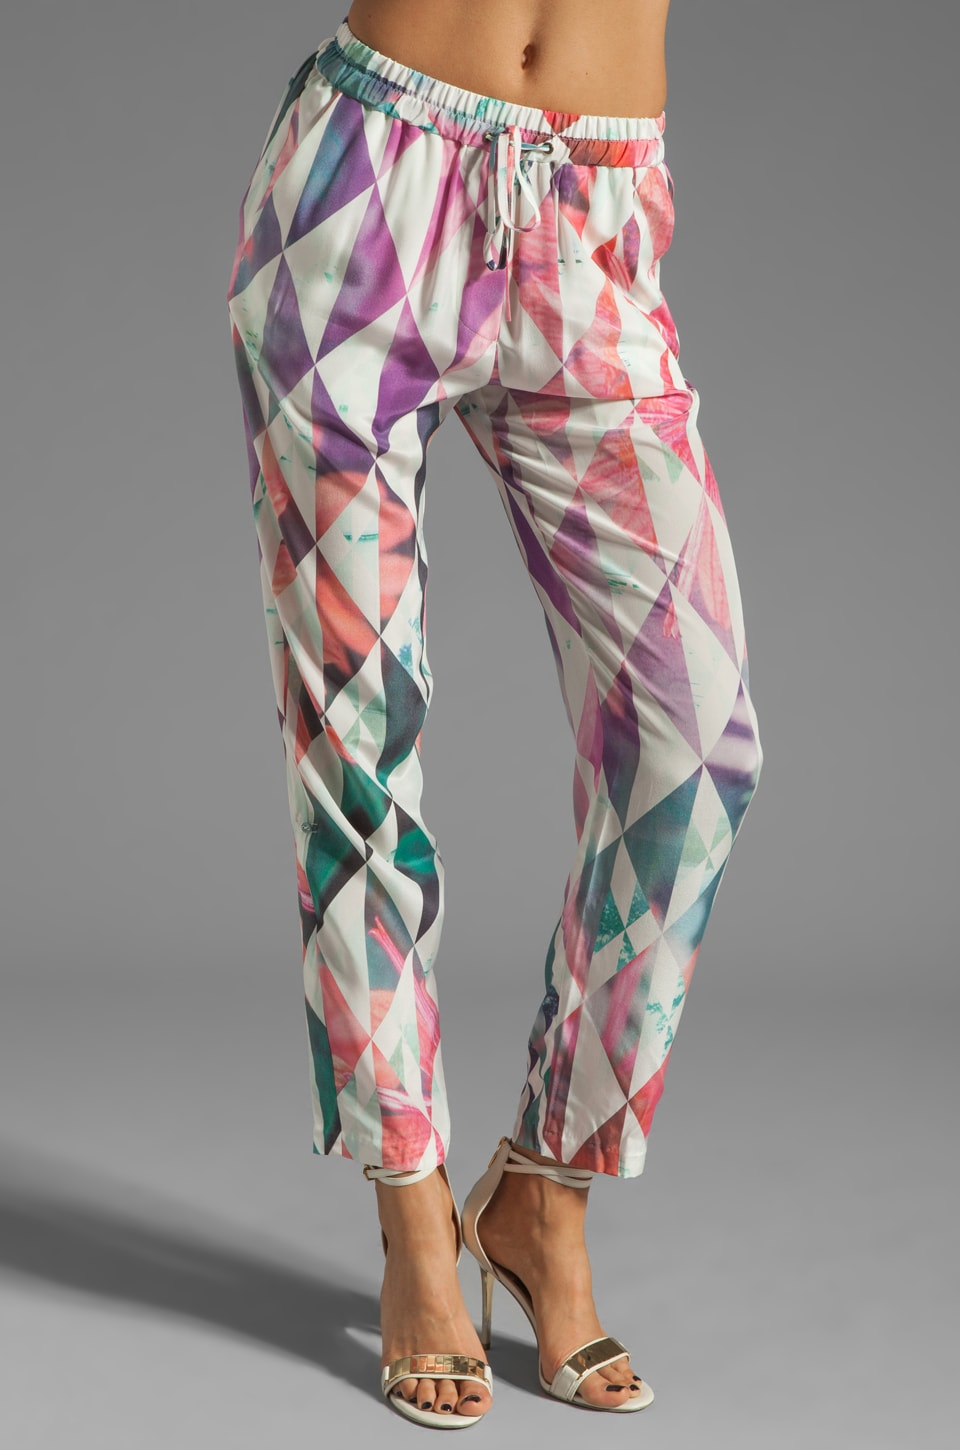 Talulah Garden Daydream Pant in Geometric Floral/White